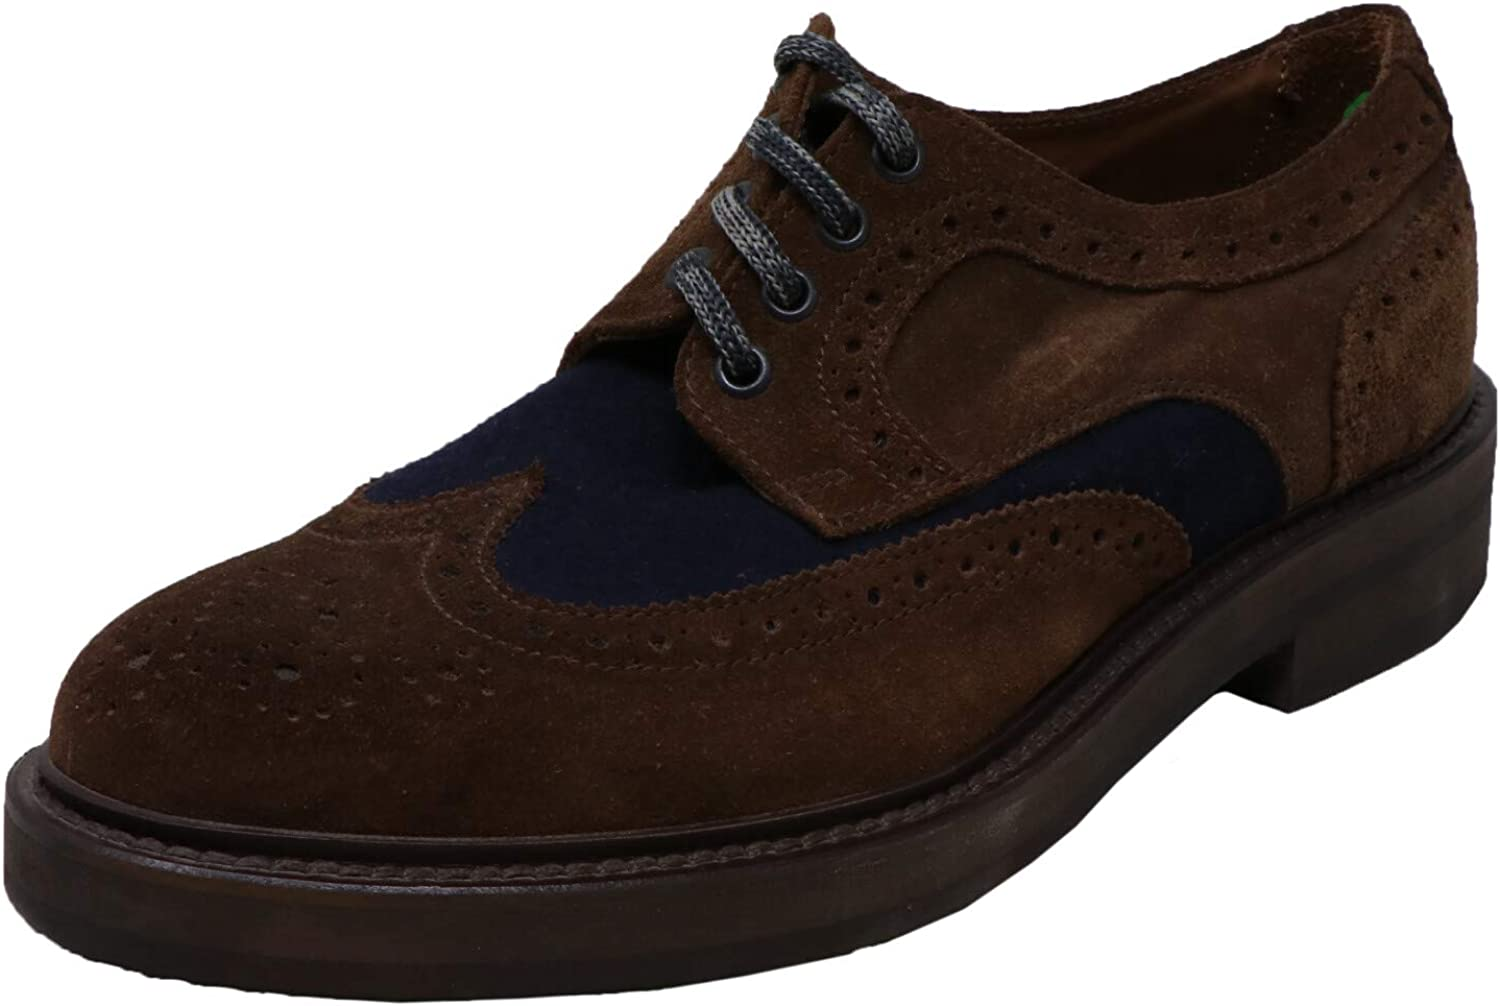 Eleventy Men's Low Heel Oxford Shoe Leather Ankle-High Suede